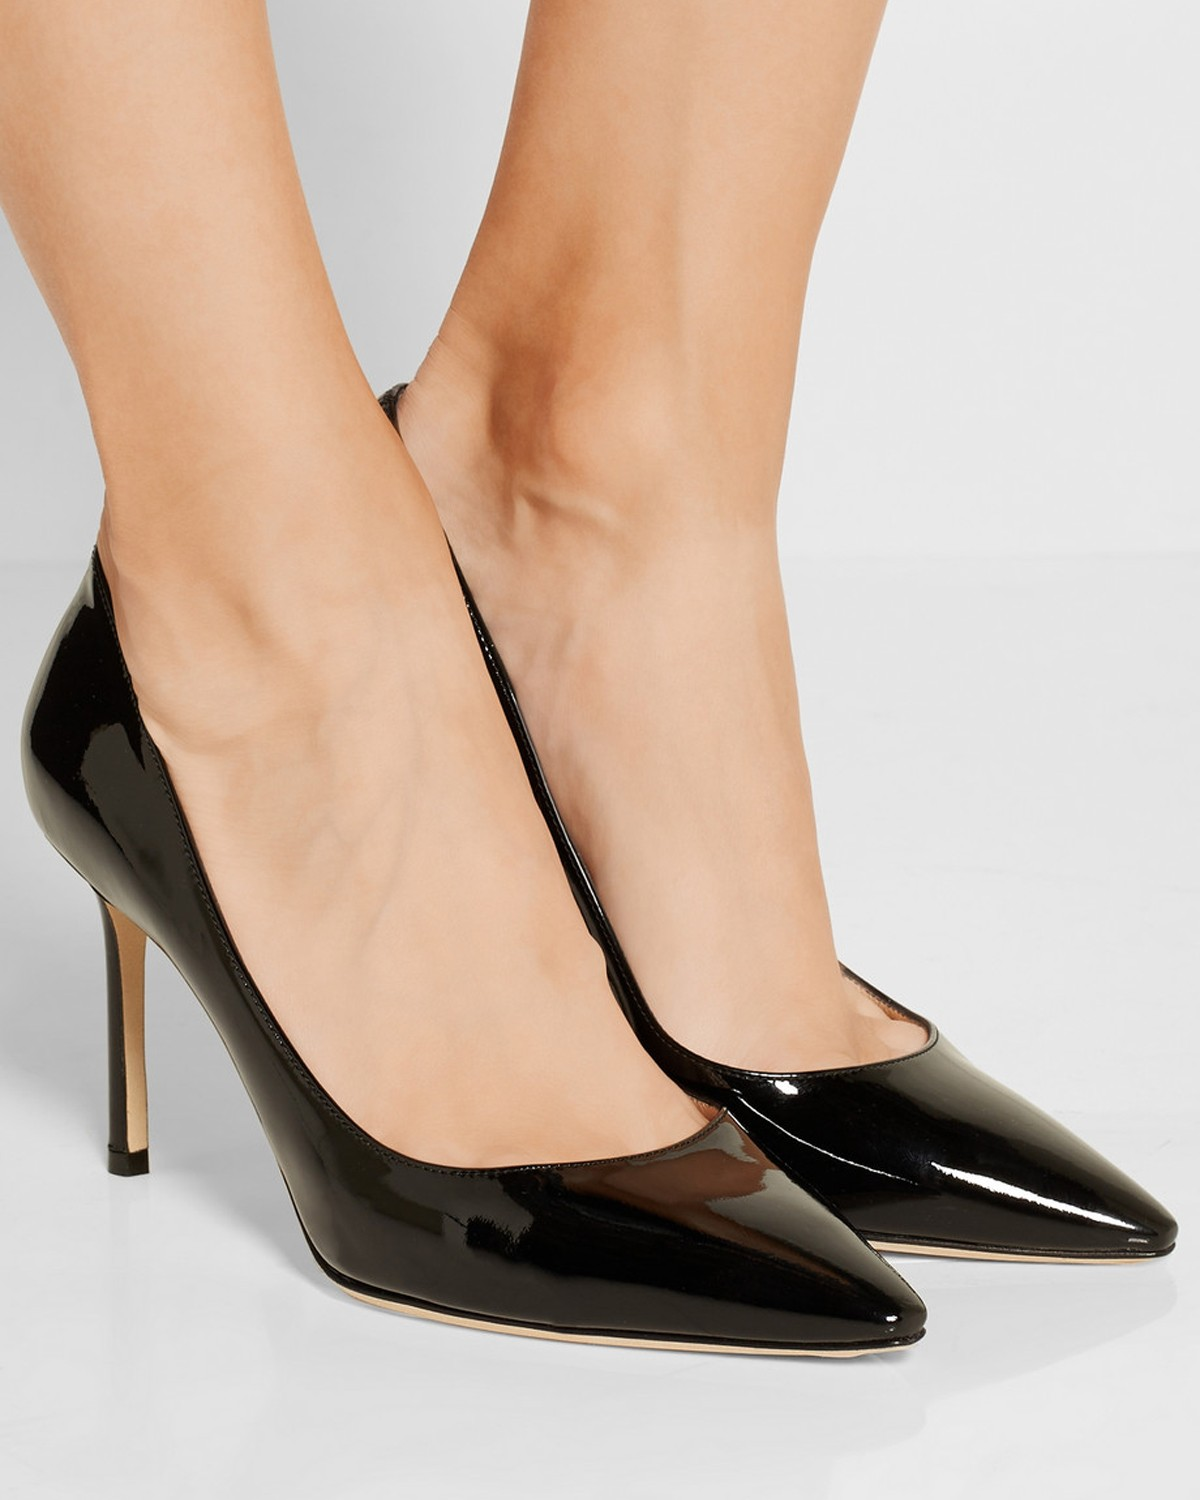 290501605dc3 JIMMY CHOO Romy patent-leather pumps - Shoes Post